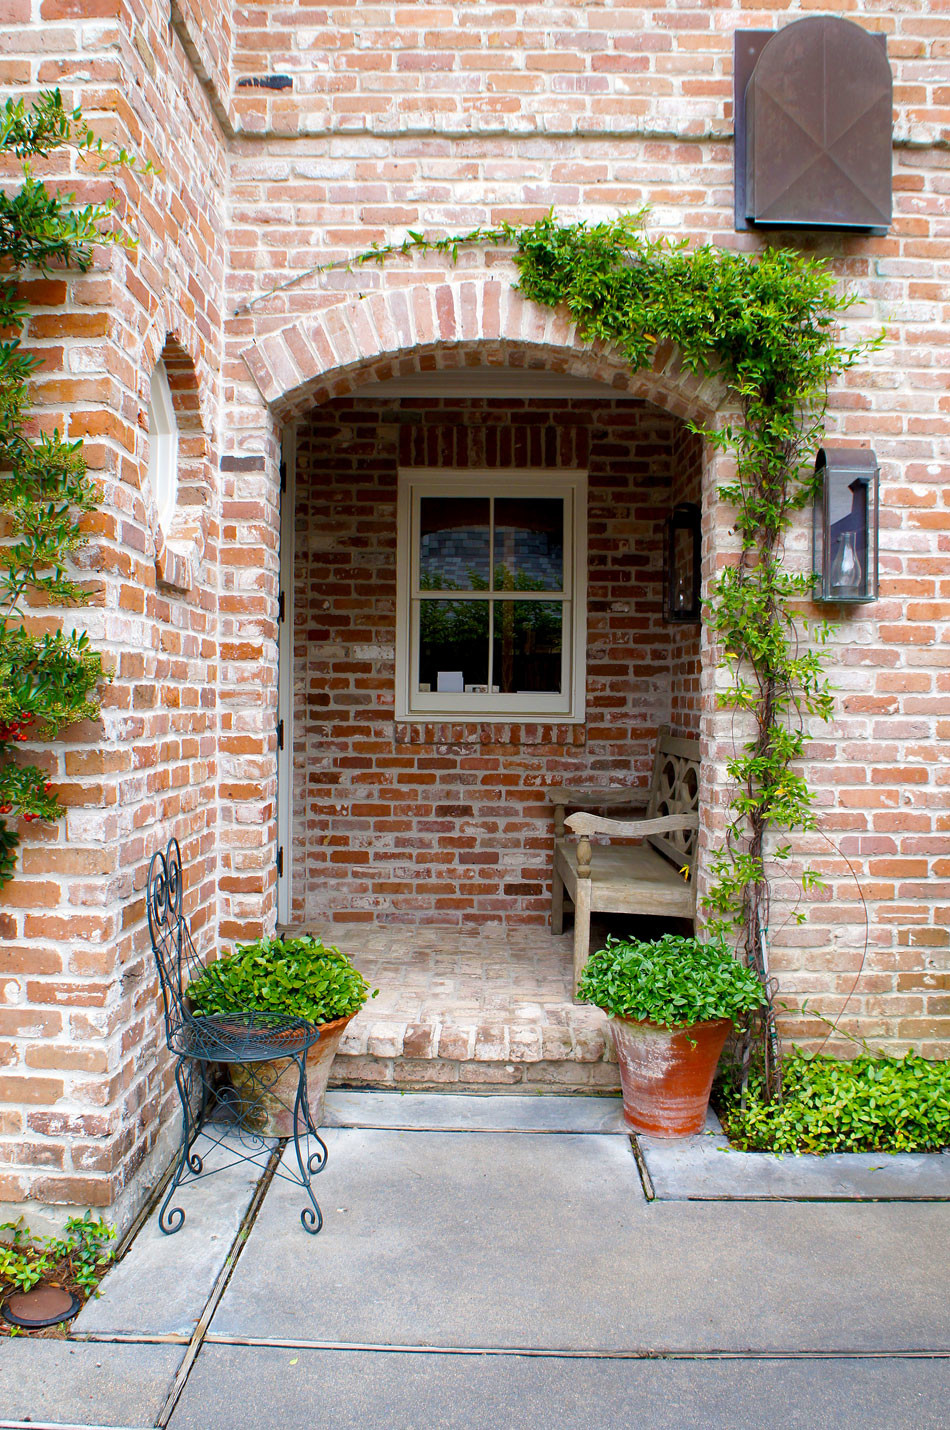 Arch doorway with climbing wisteria.